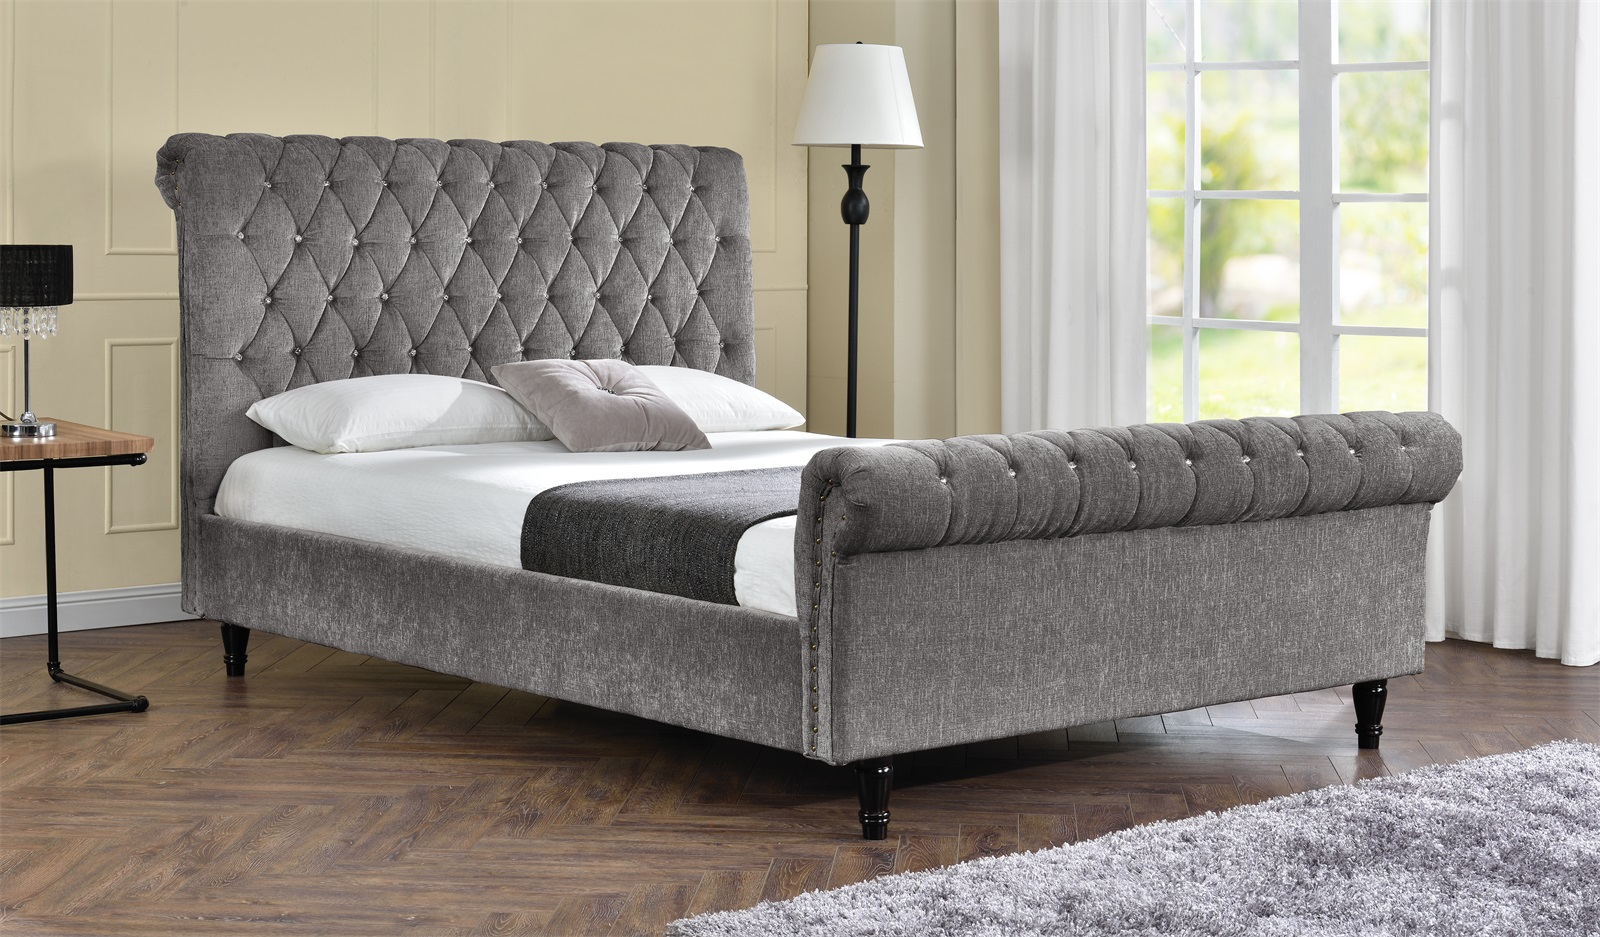 Brooklyn Diamante Crystal Mink Chenille Fabric Bed Frame